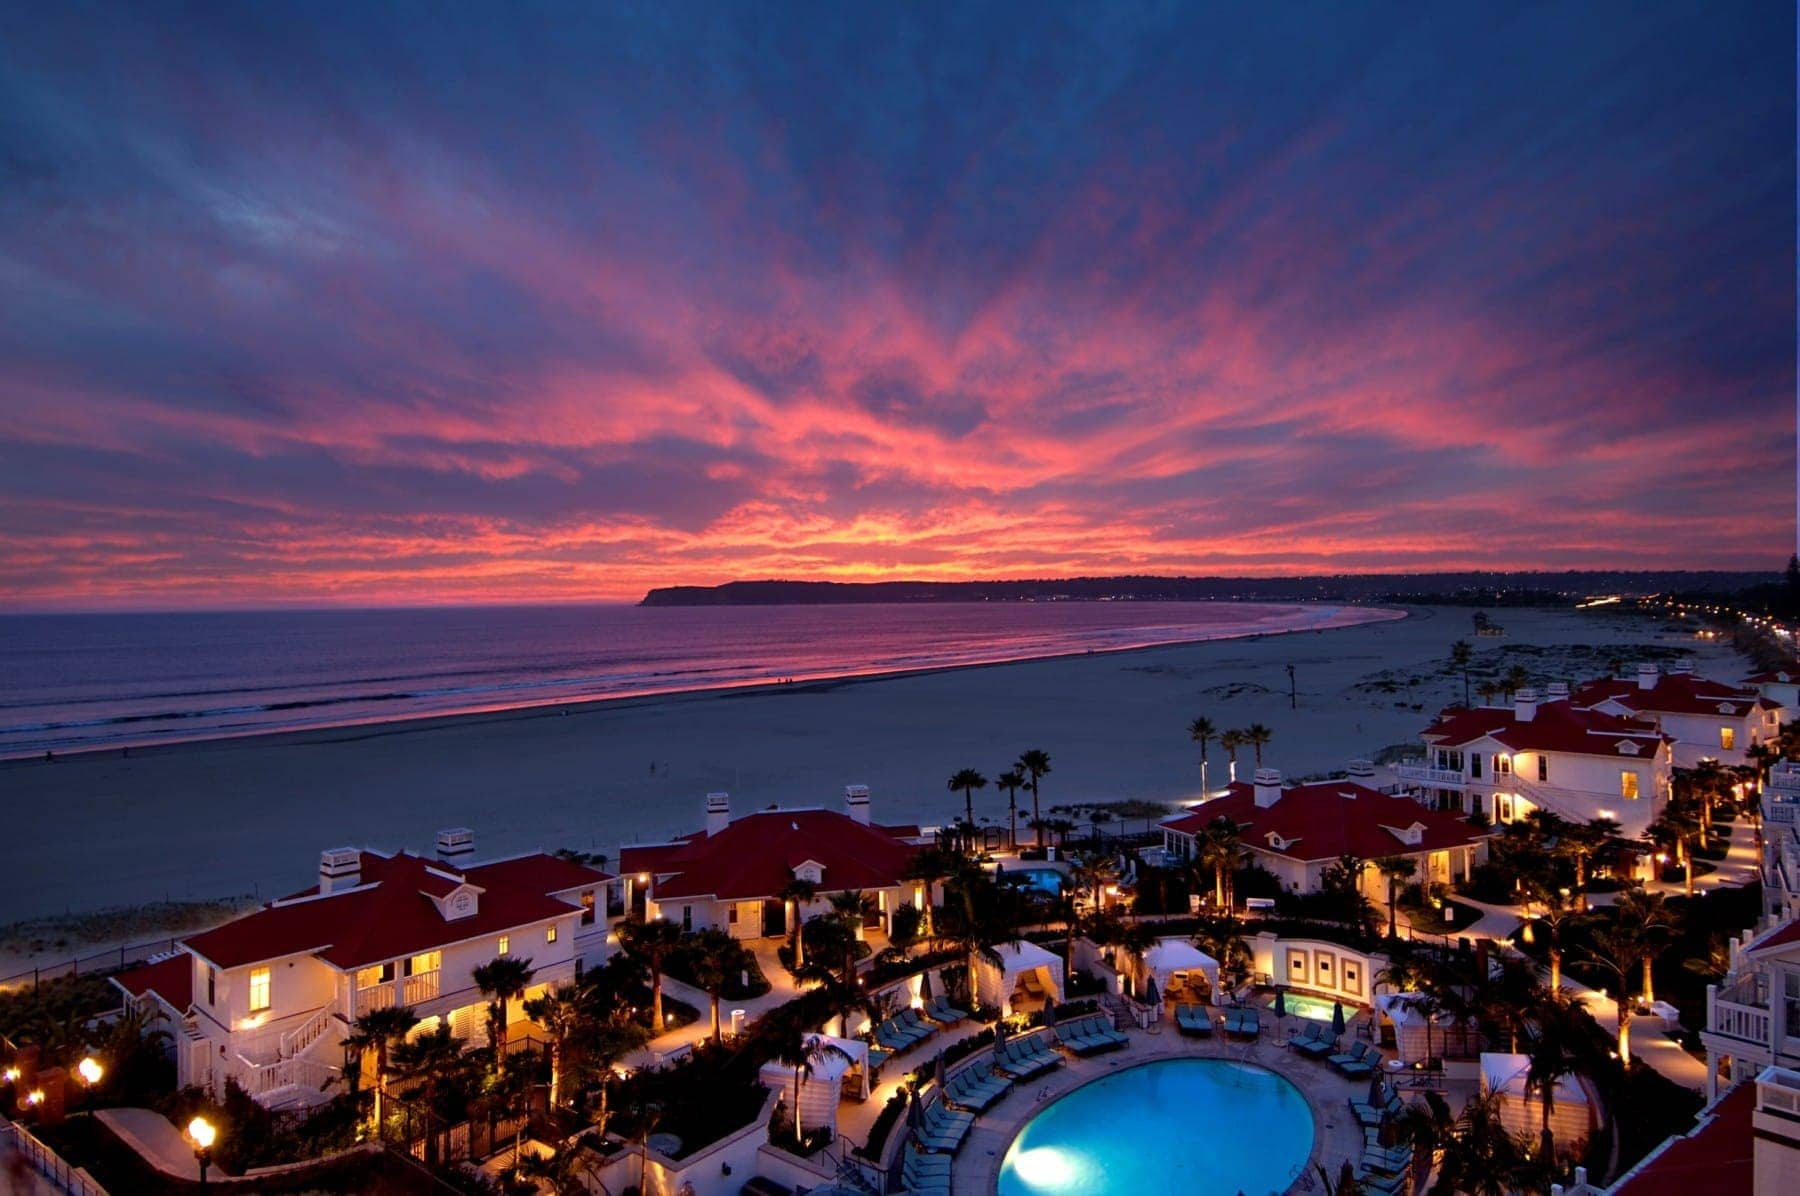 hotel del coronado at sunset